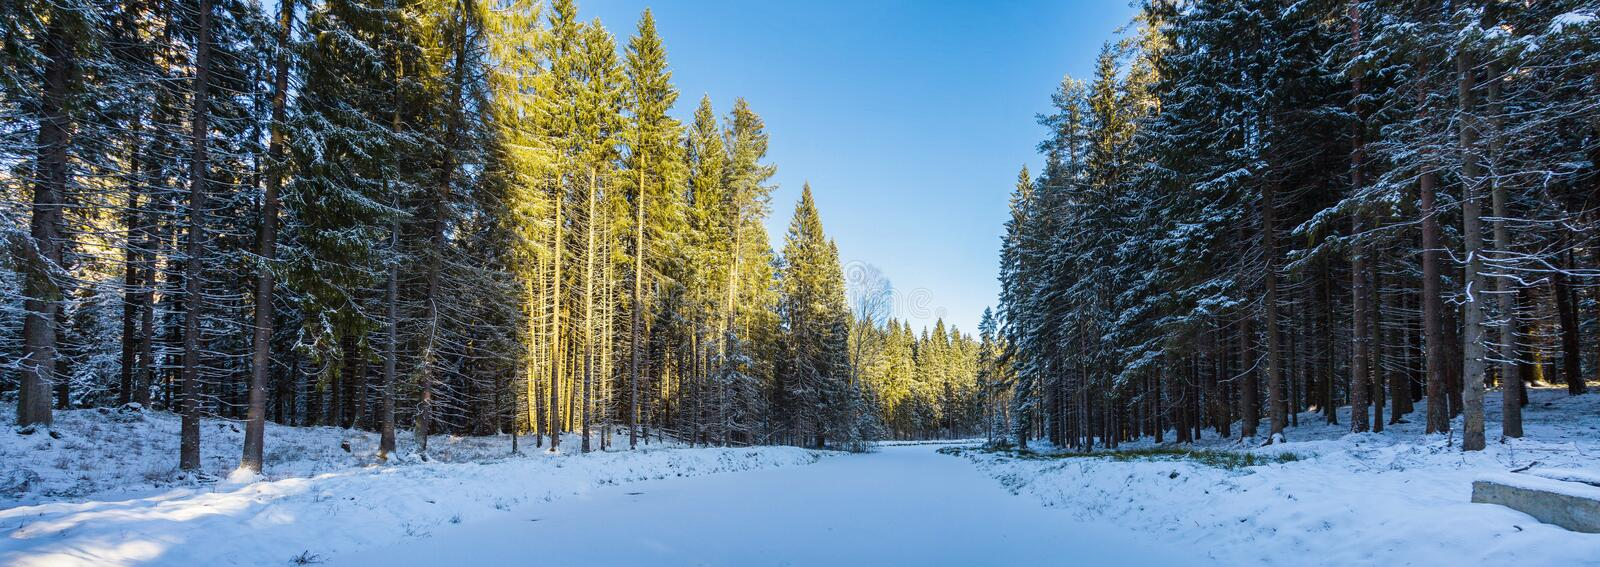 Panorama of a sunlit snow-covered forest of huge spruce   trees on both sides  of a snowy forest river.  royalty free stock photography